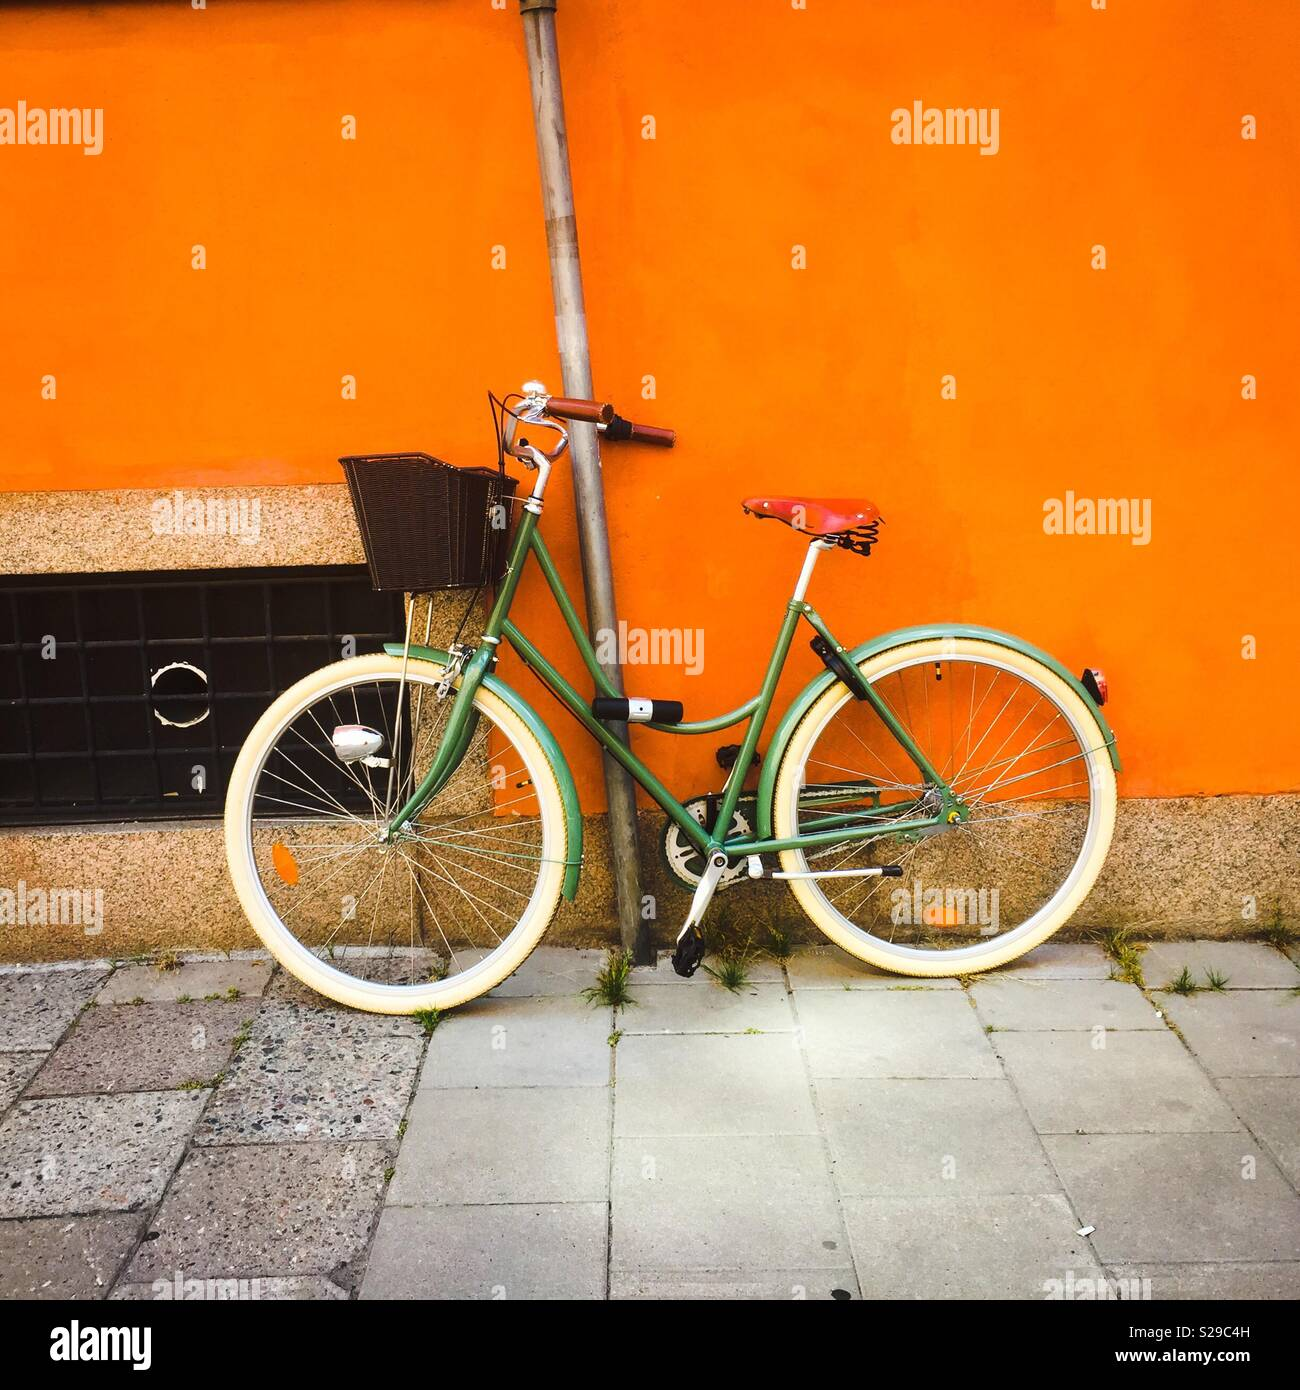 Bicyclette verte leaning against orange wall Photo Stock